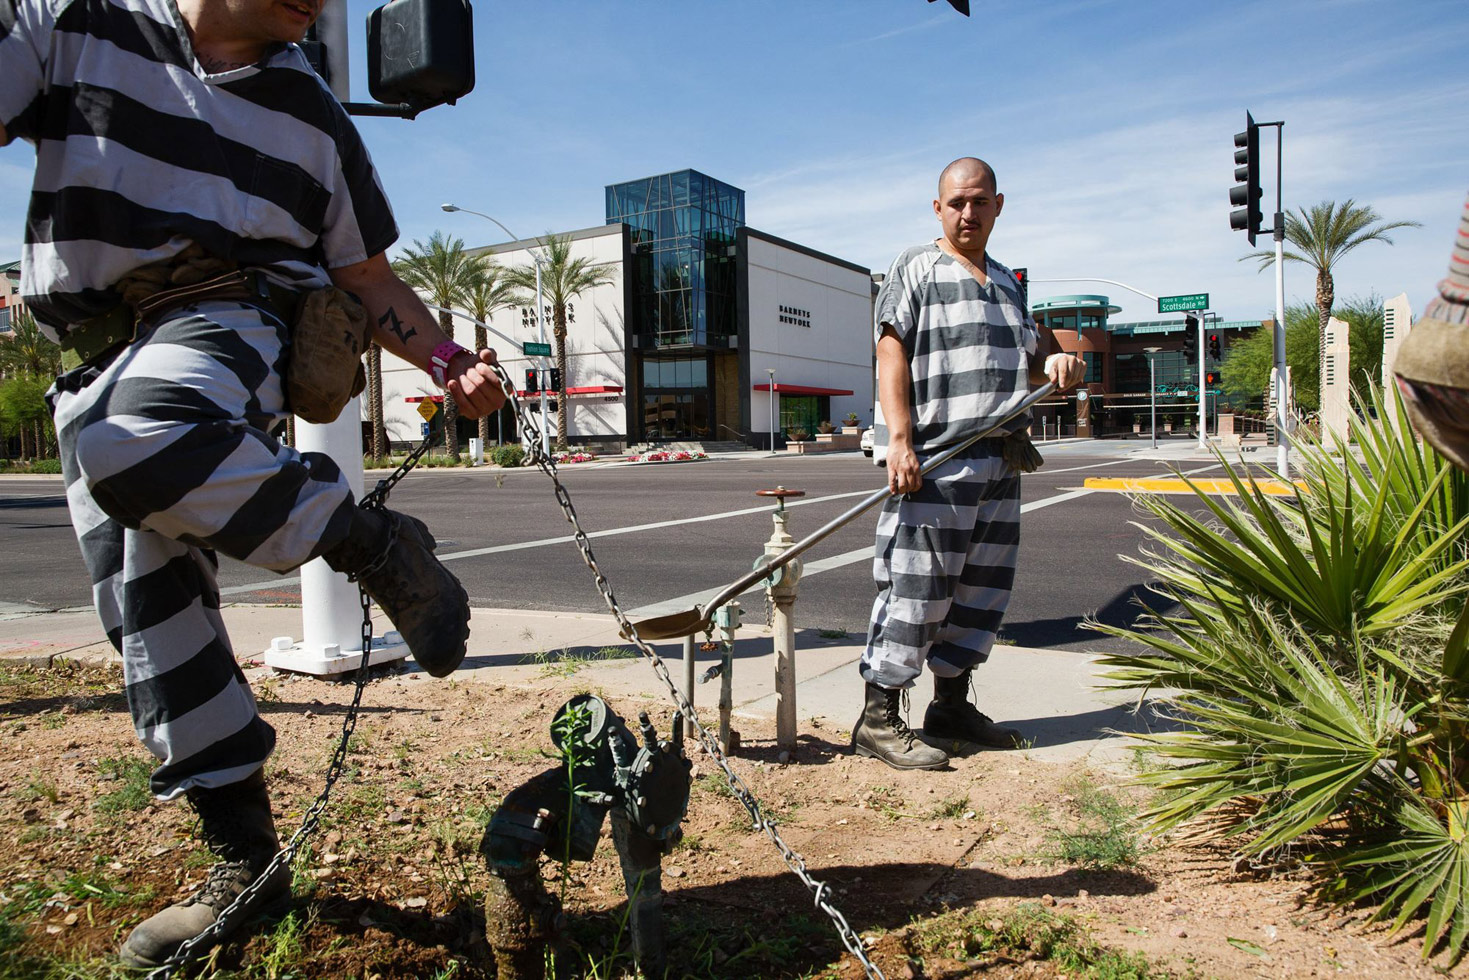 Chained inmates working in Phoenix.